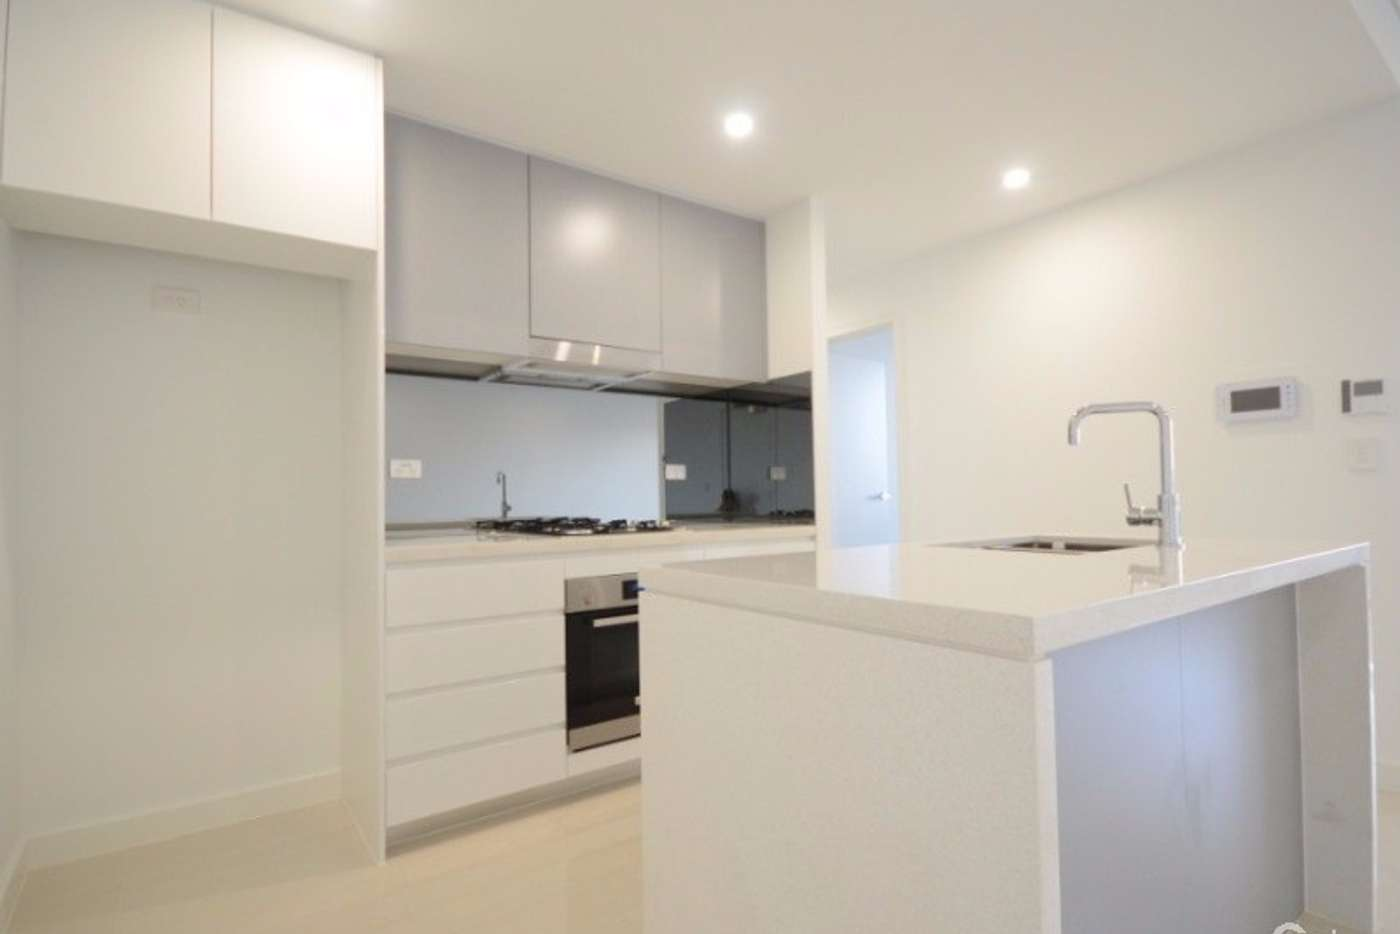 Sixth view of Homely apartment listing, 2610/1A Morton Street, Parramatta NSW 2150